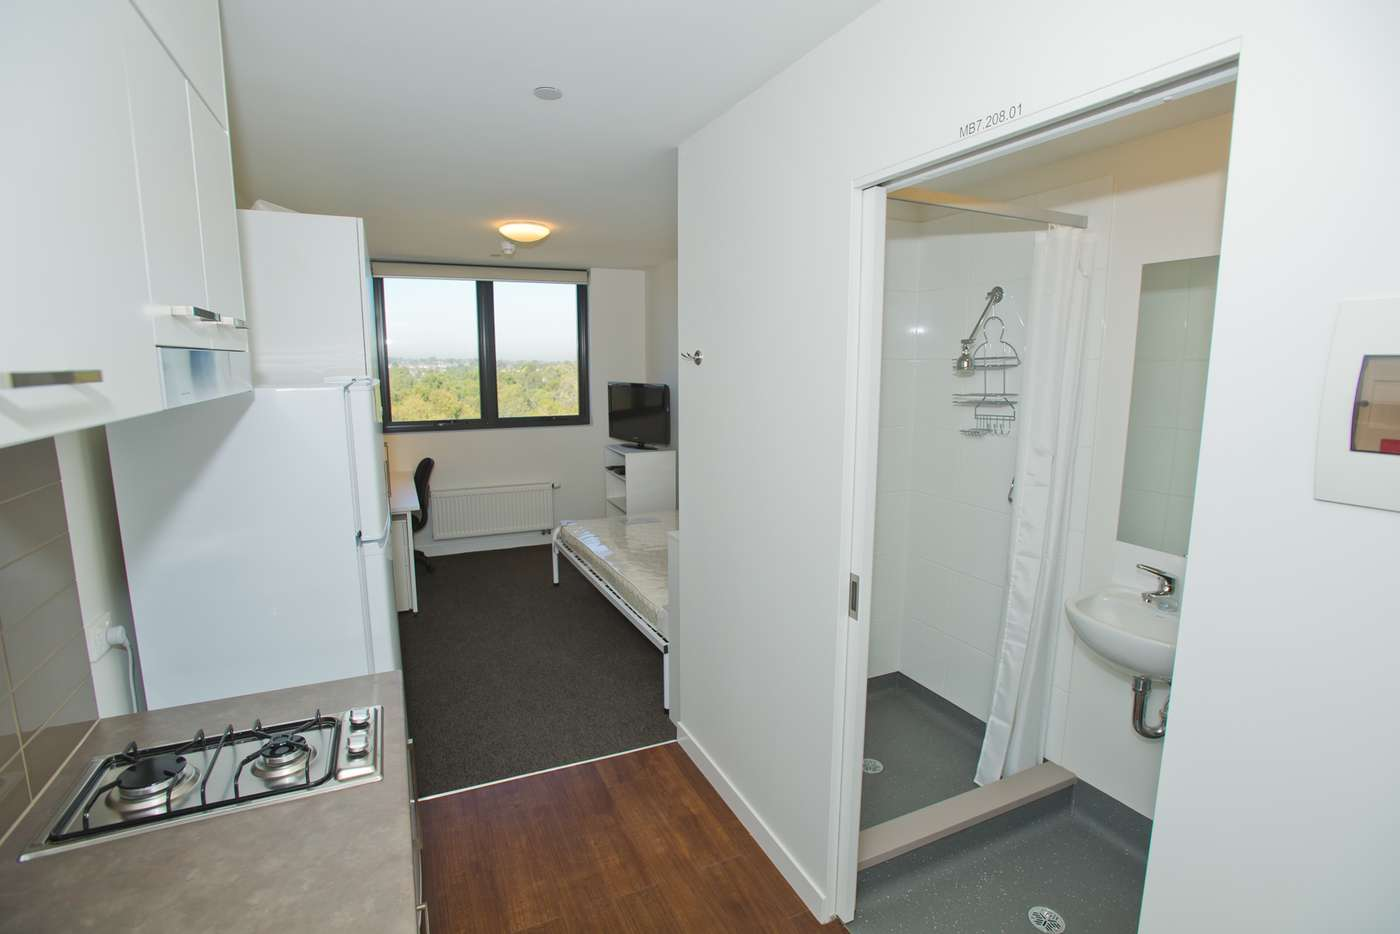 Seventh view of Homely studio listing, 221 Burwood Highway, Burwood VIC 3125